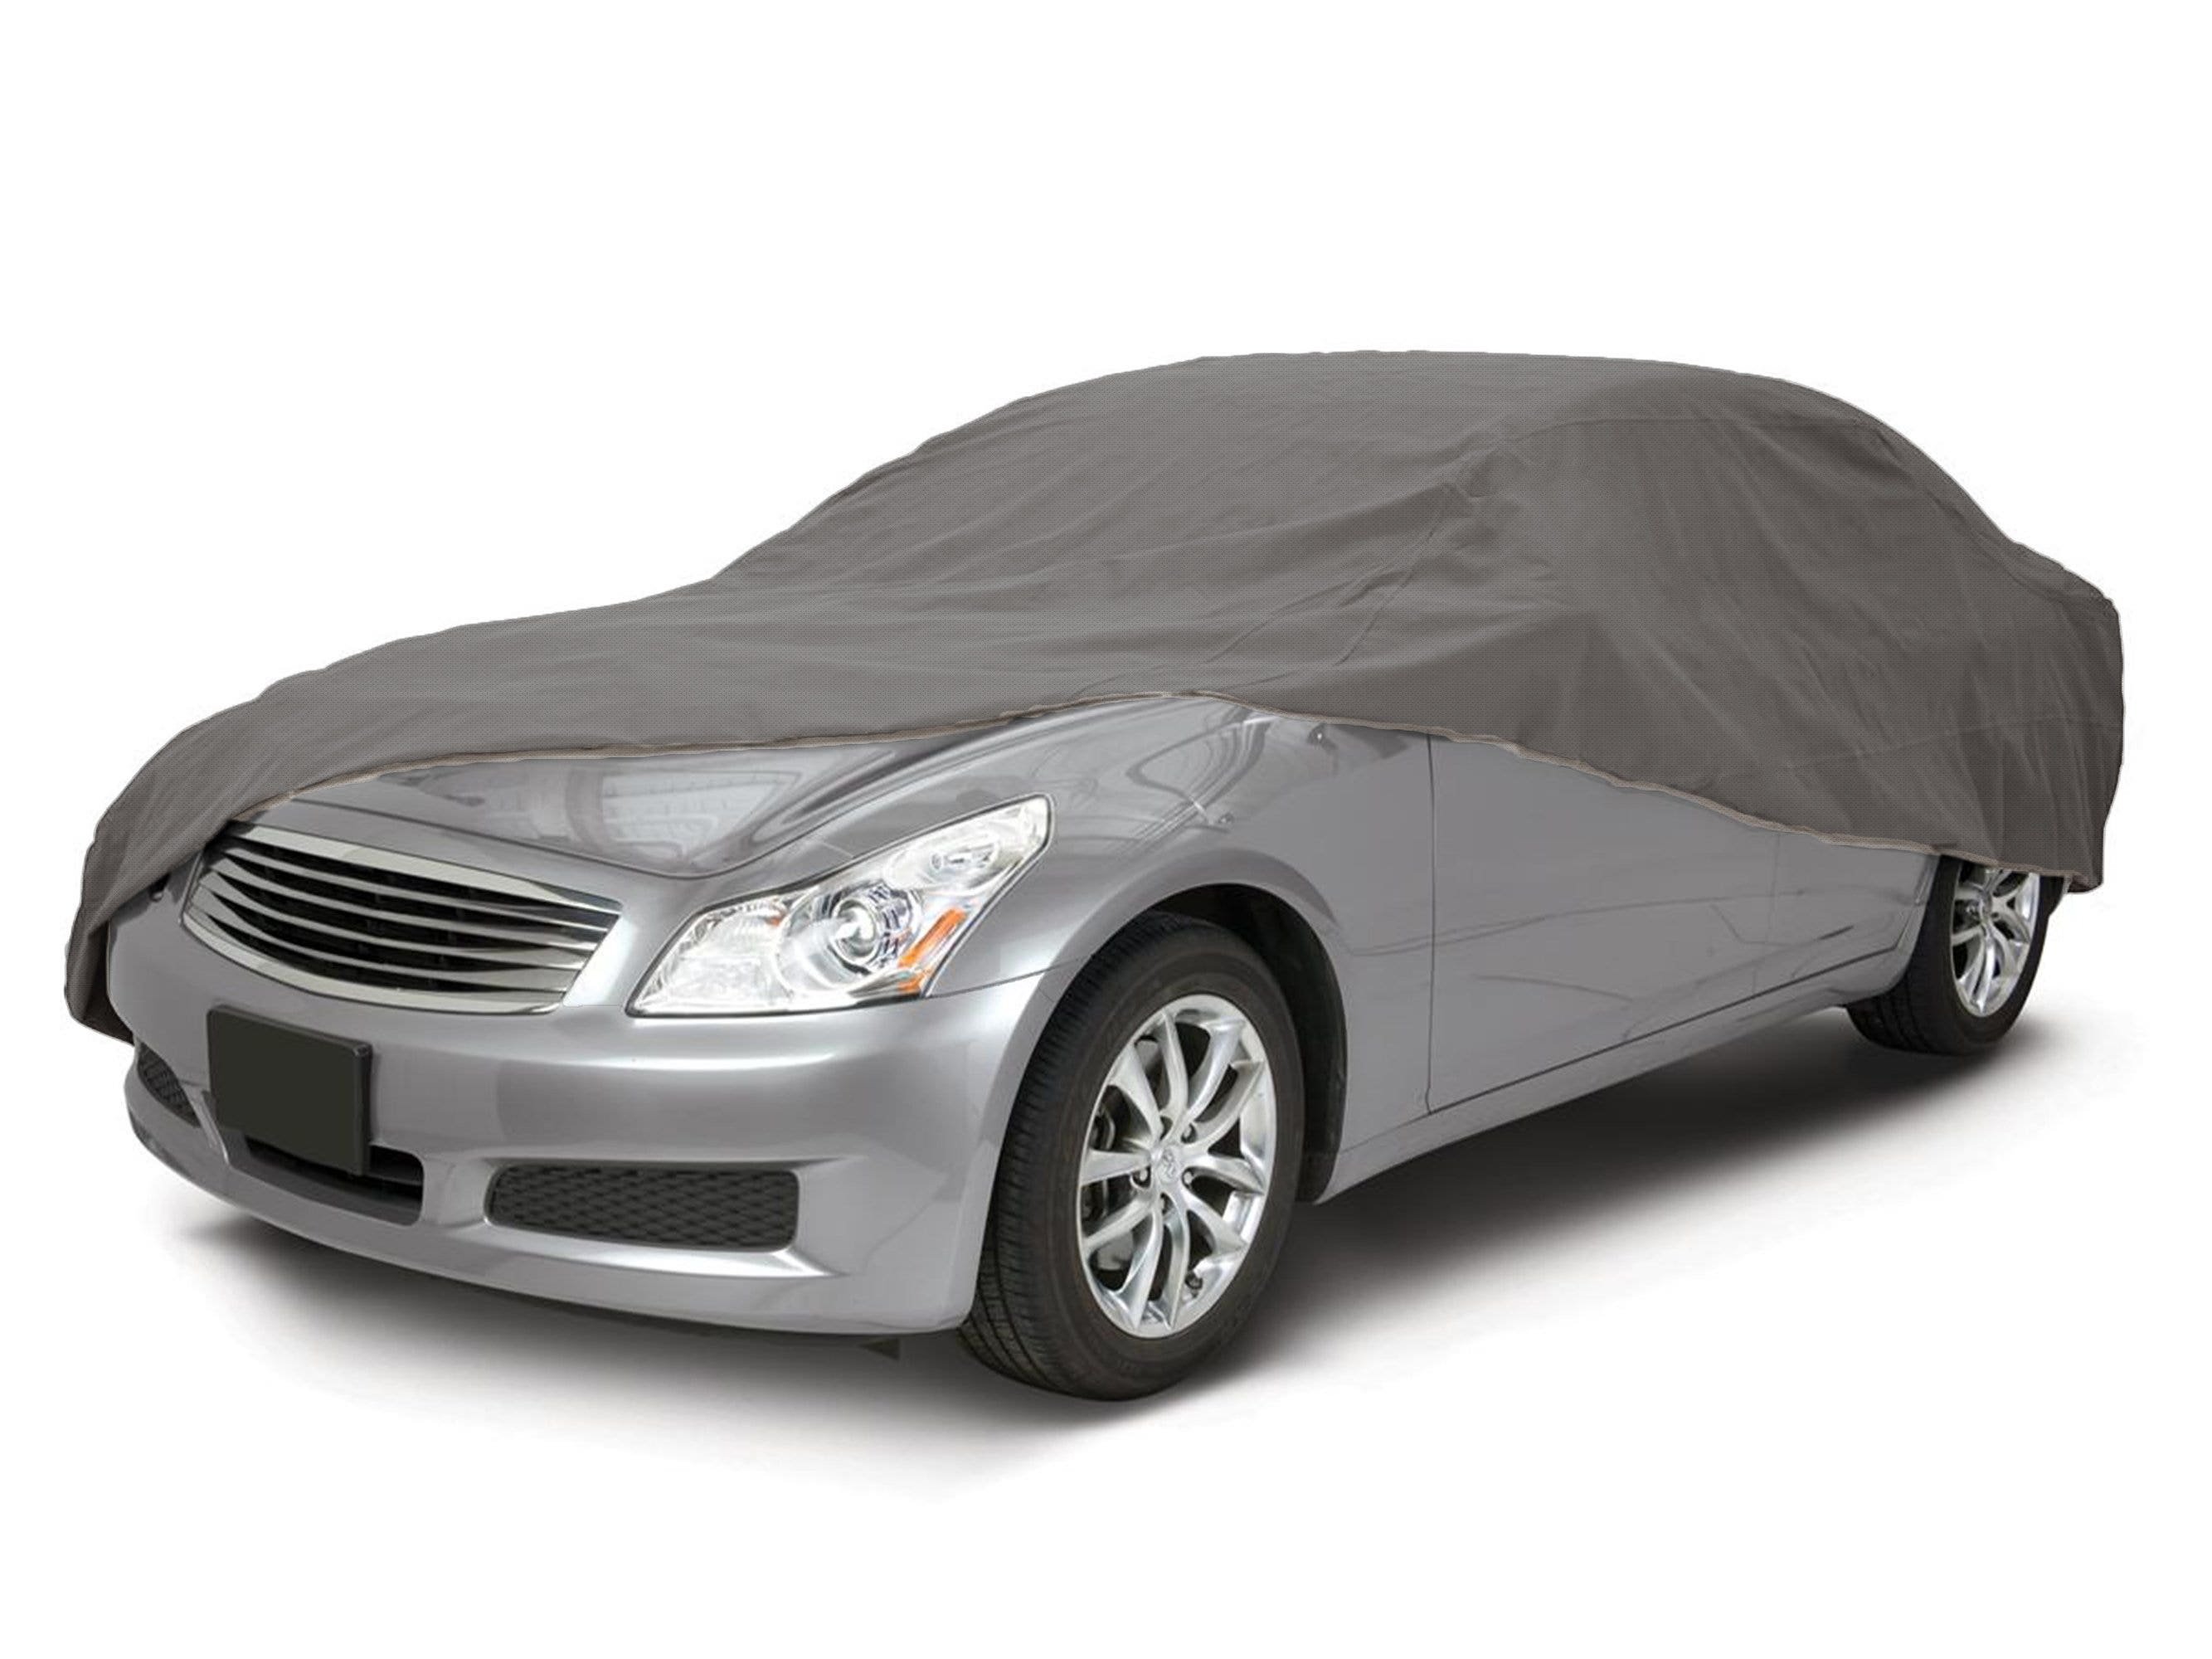 CoverMates Select Max Custom Car Cover